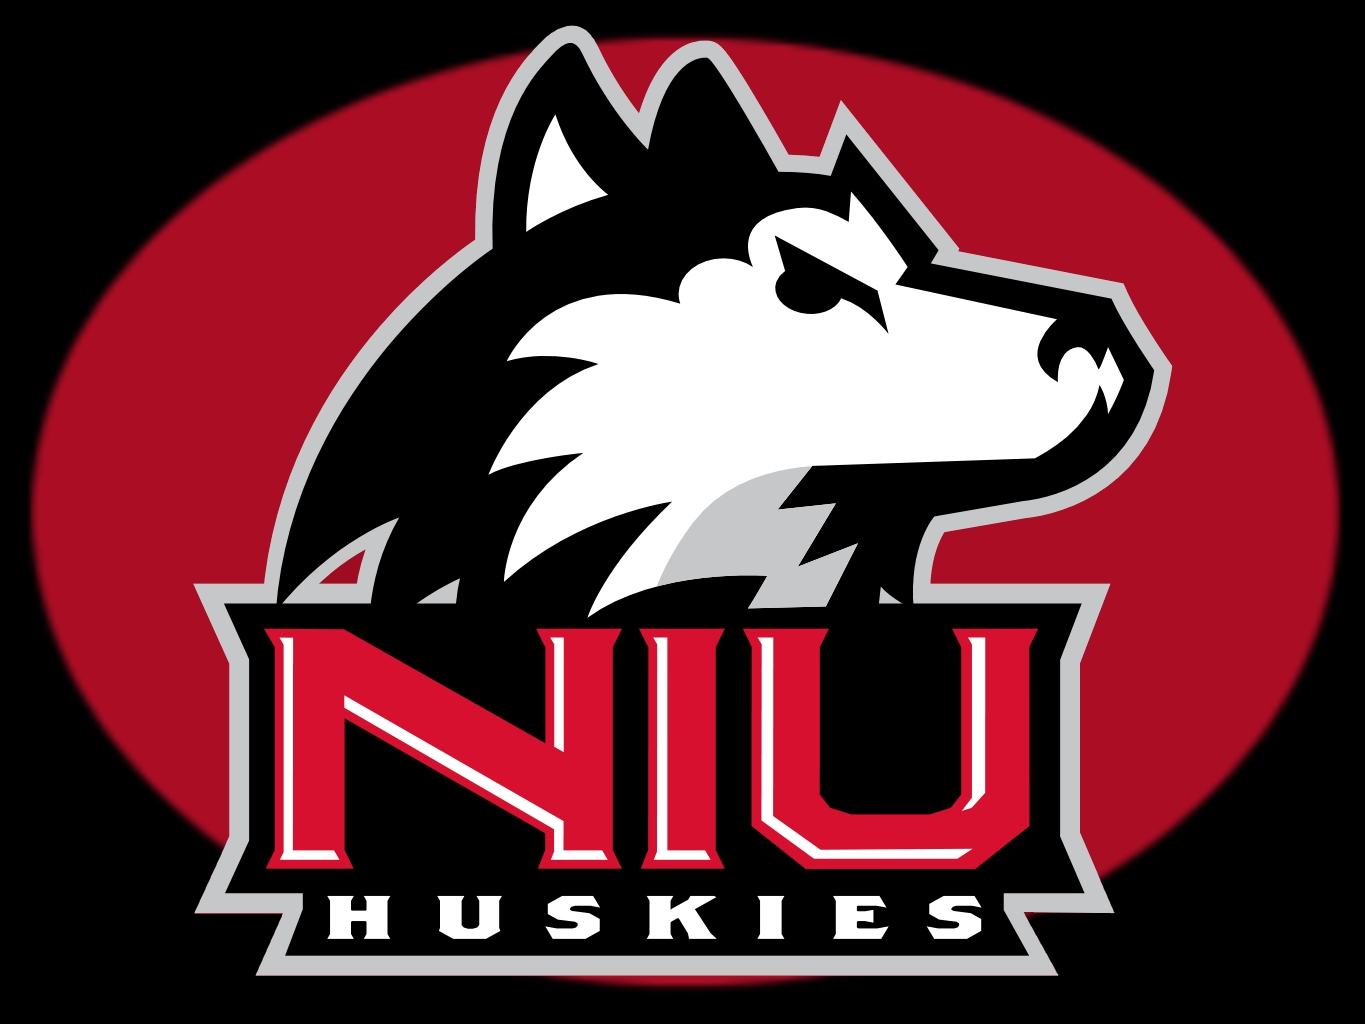 NIU Huskies Wallpaper 6 Images   Frompo 1365x1024